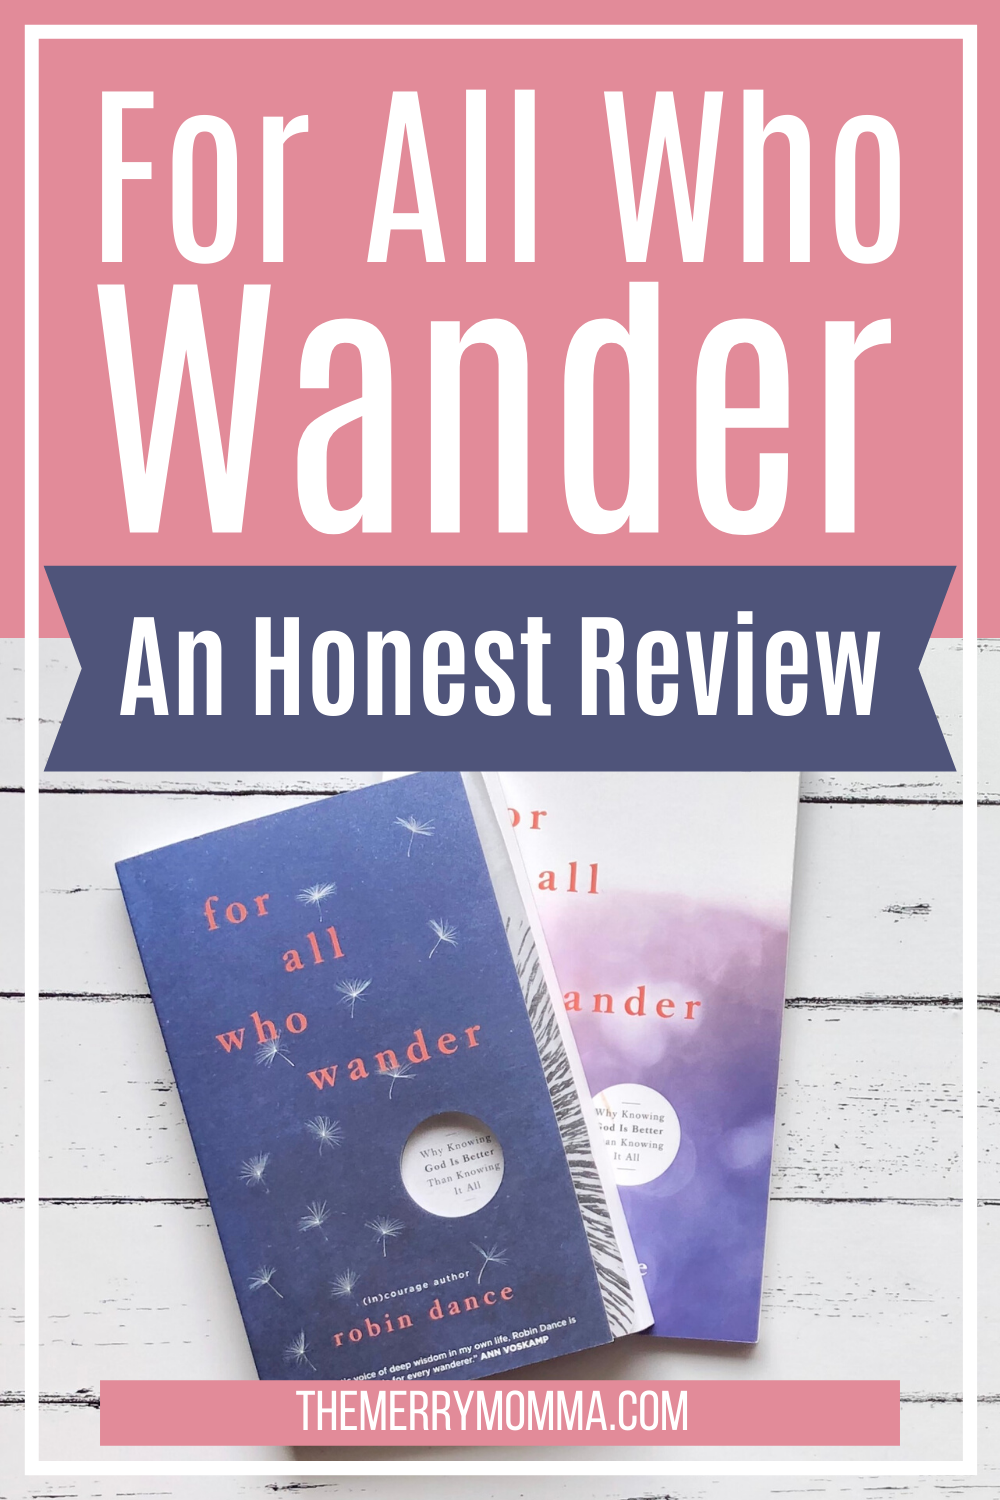 An Honest Review of For All Who Wander